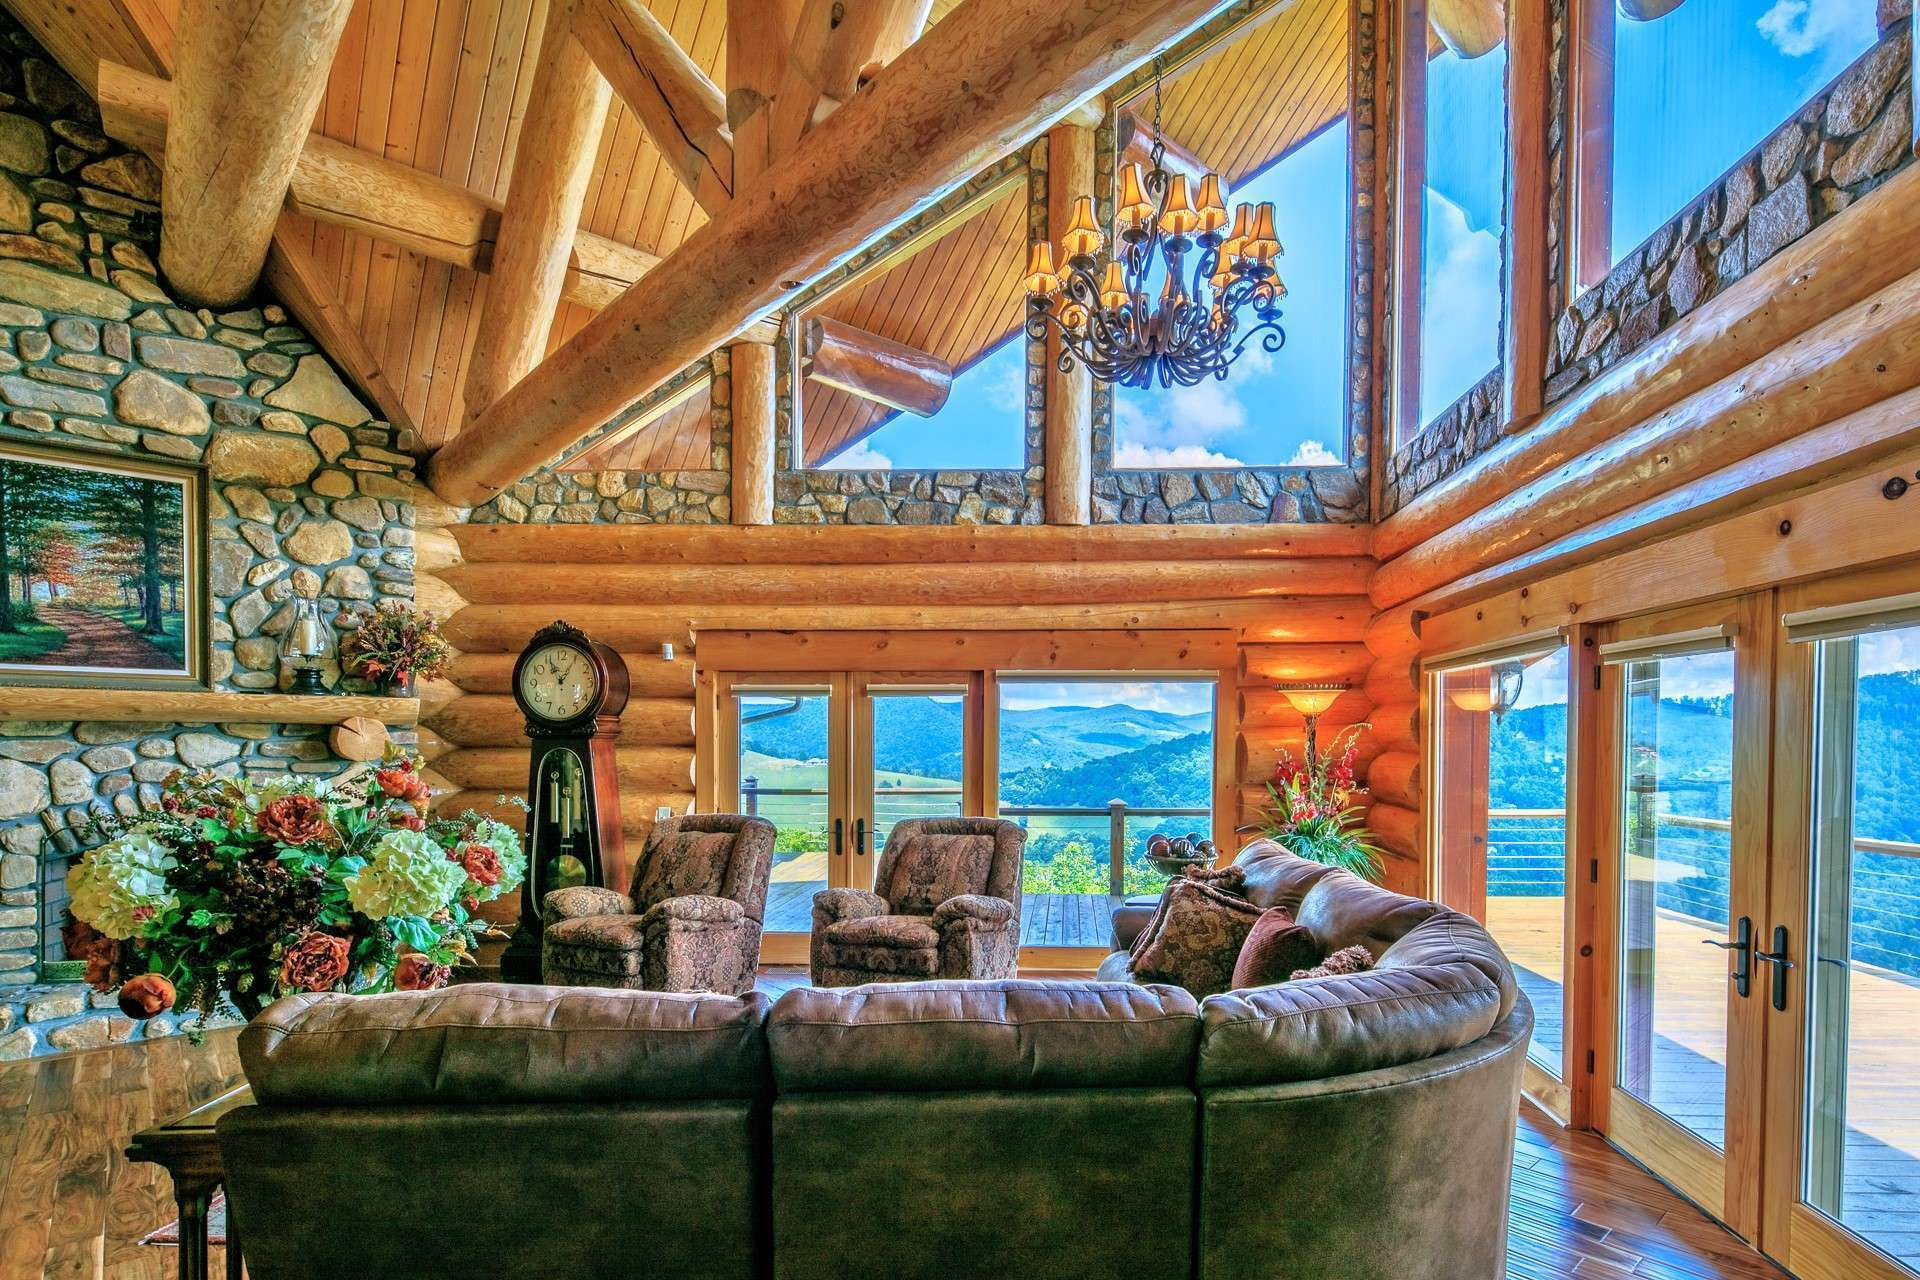 The high vaulted ceiling highlights the exposed log beams while the vast wall of windows fill the cabin with natural light and enables you to enjoy the great outdoors throughout all four seasons in the majestic Blue Ridge Mountains.